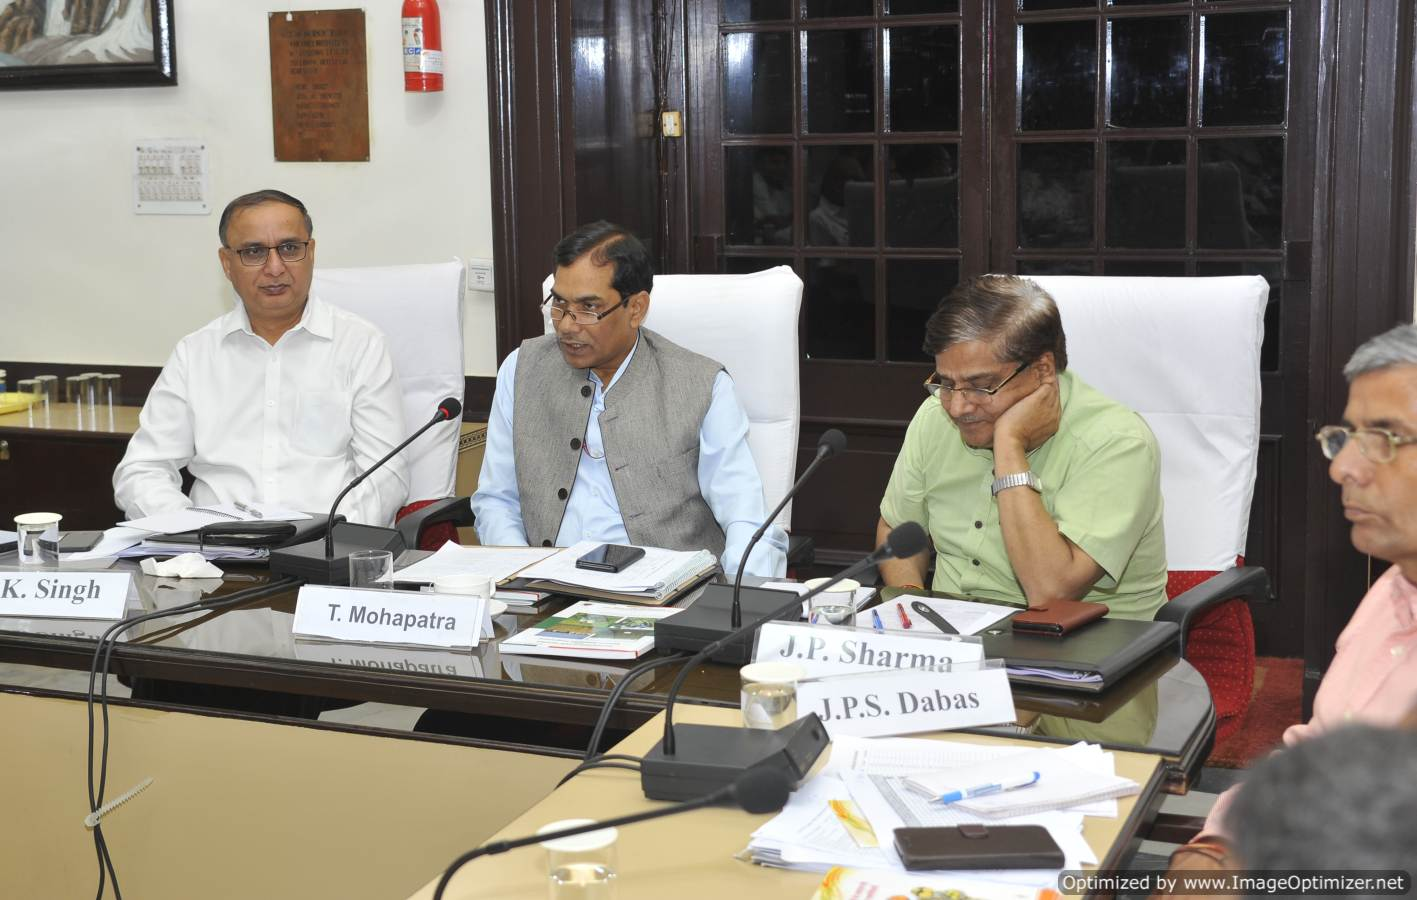 Dr. T. Mohapatra, Secretary DARE & DG, ICAR addressing the participants at IARI-NEP-VO workshop organized on 04.05.19 at IARI, Delhi